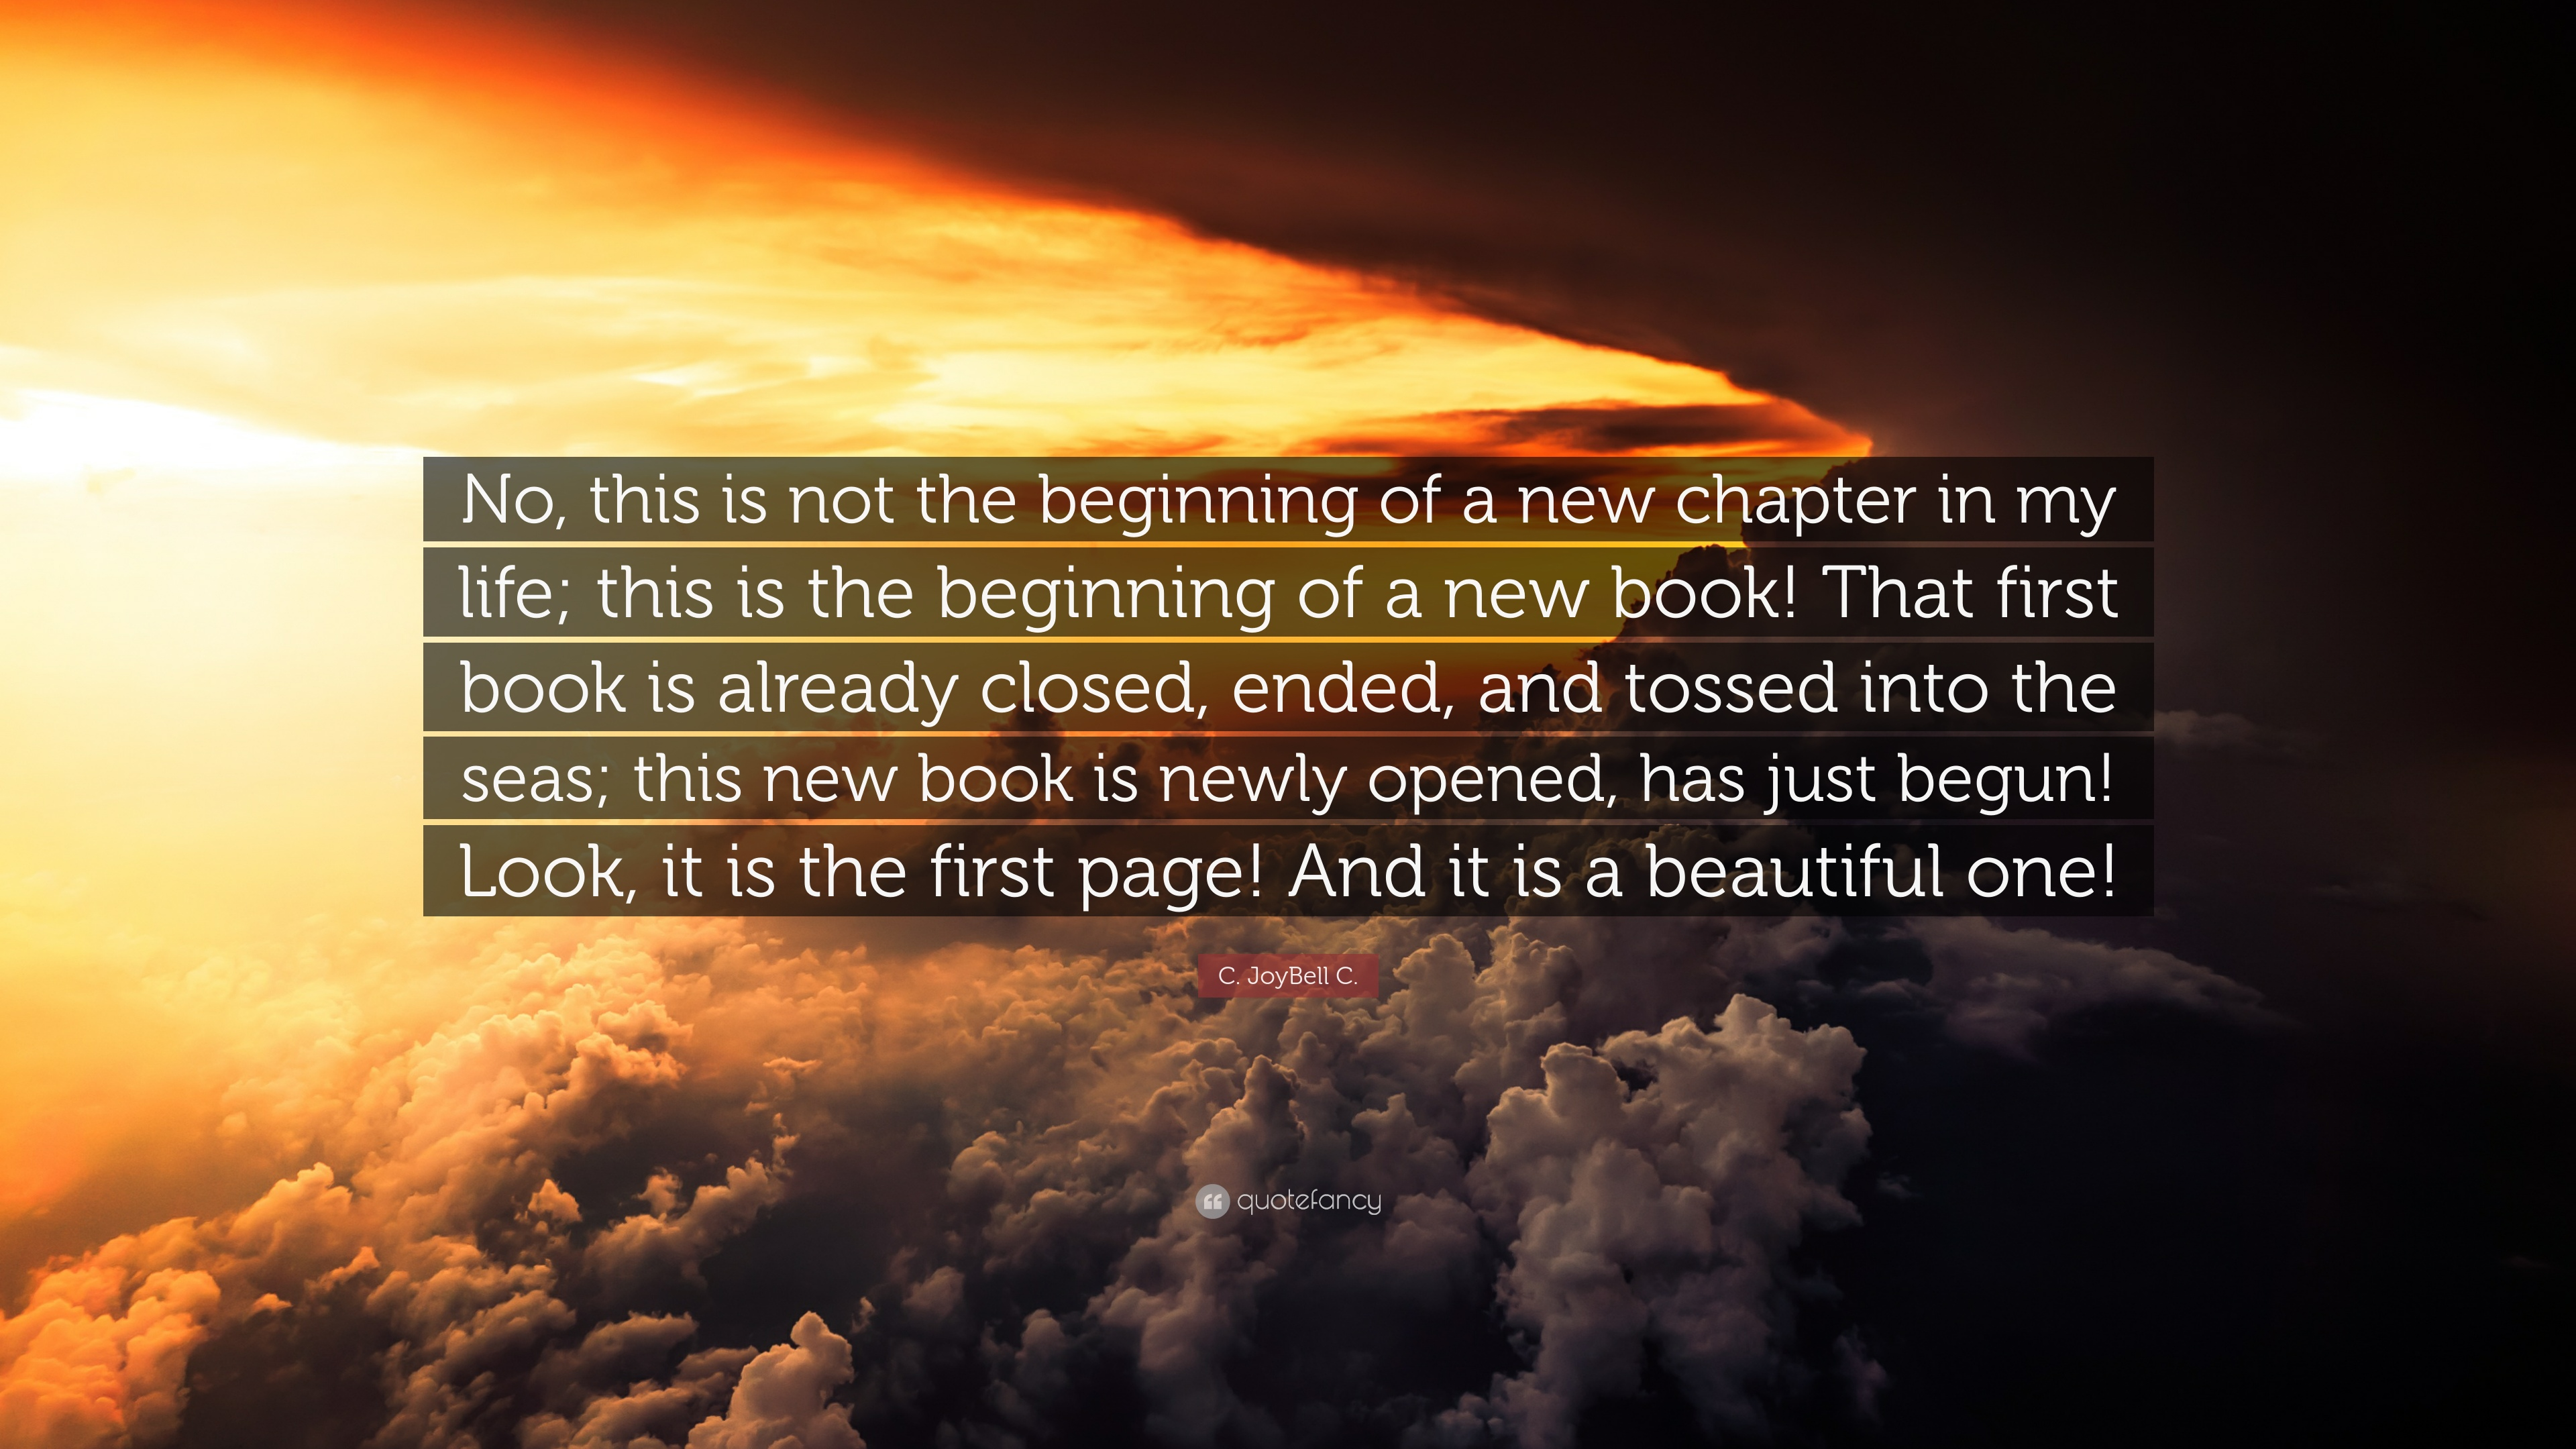 New Beginning New Chapter In Life Quotes, Quotations & Sayings 2018